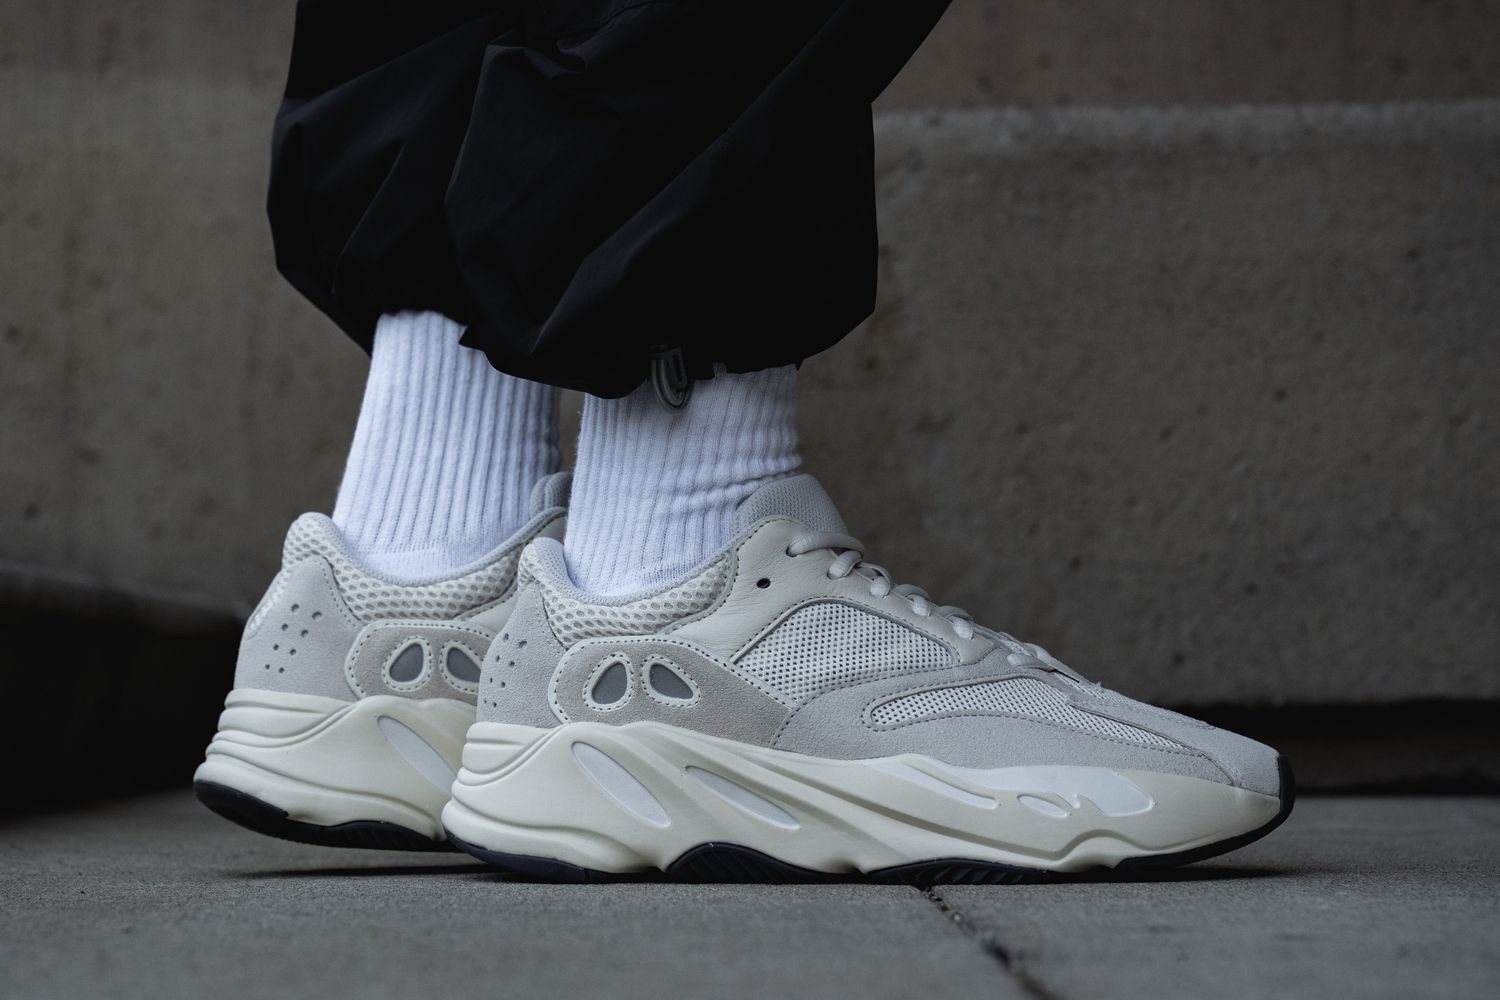 Take An On Foot Look At The Adidas Yeezy Boost 700 Analog Adidas Yeezy Yeezy Adidas Yeezy Boost